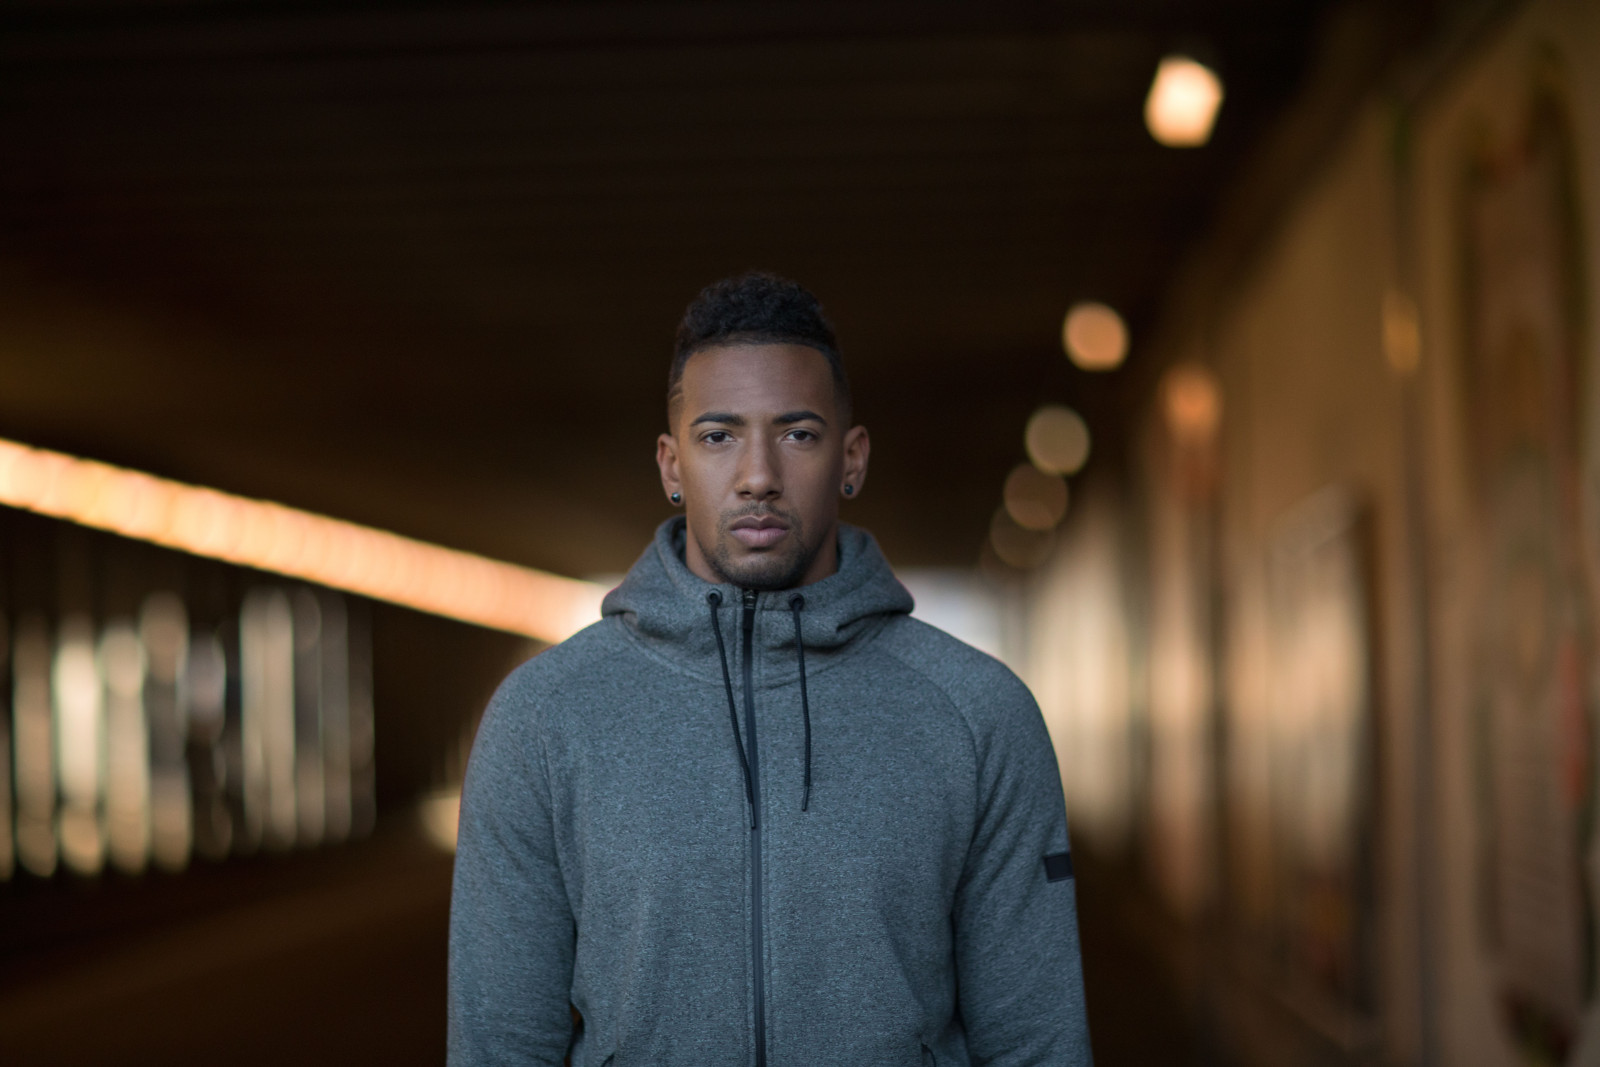 Jerome Boateng for Nike